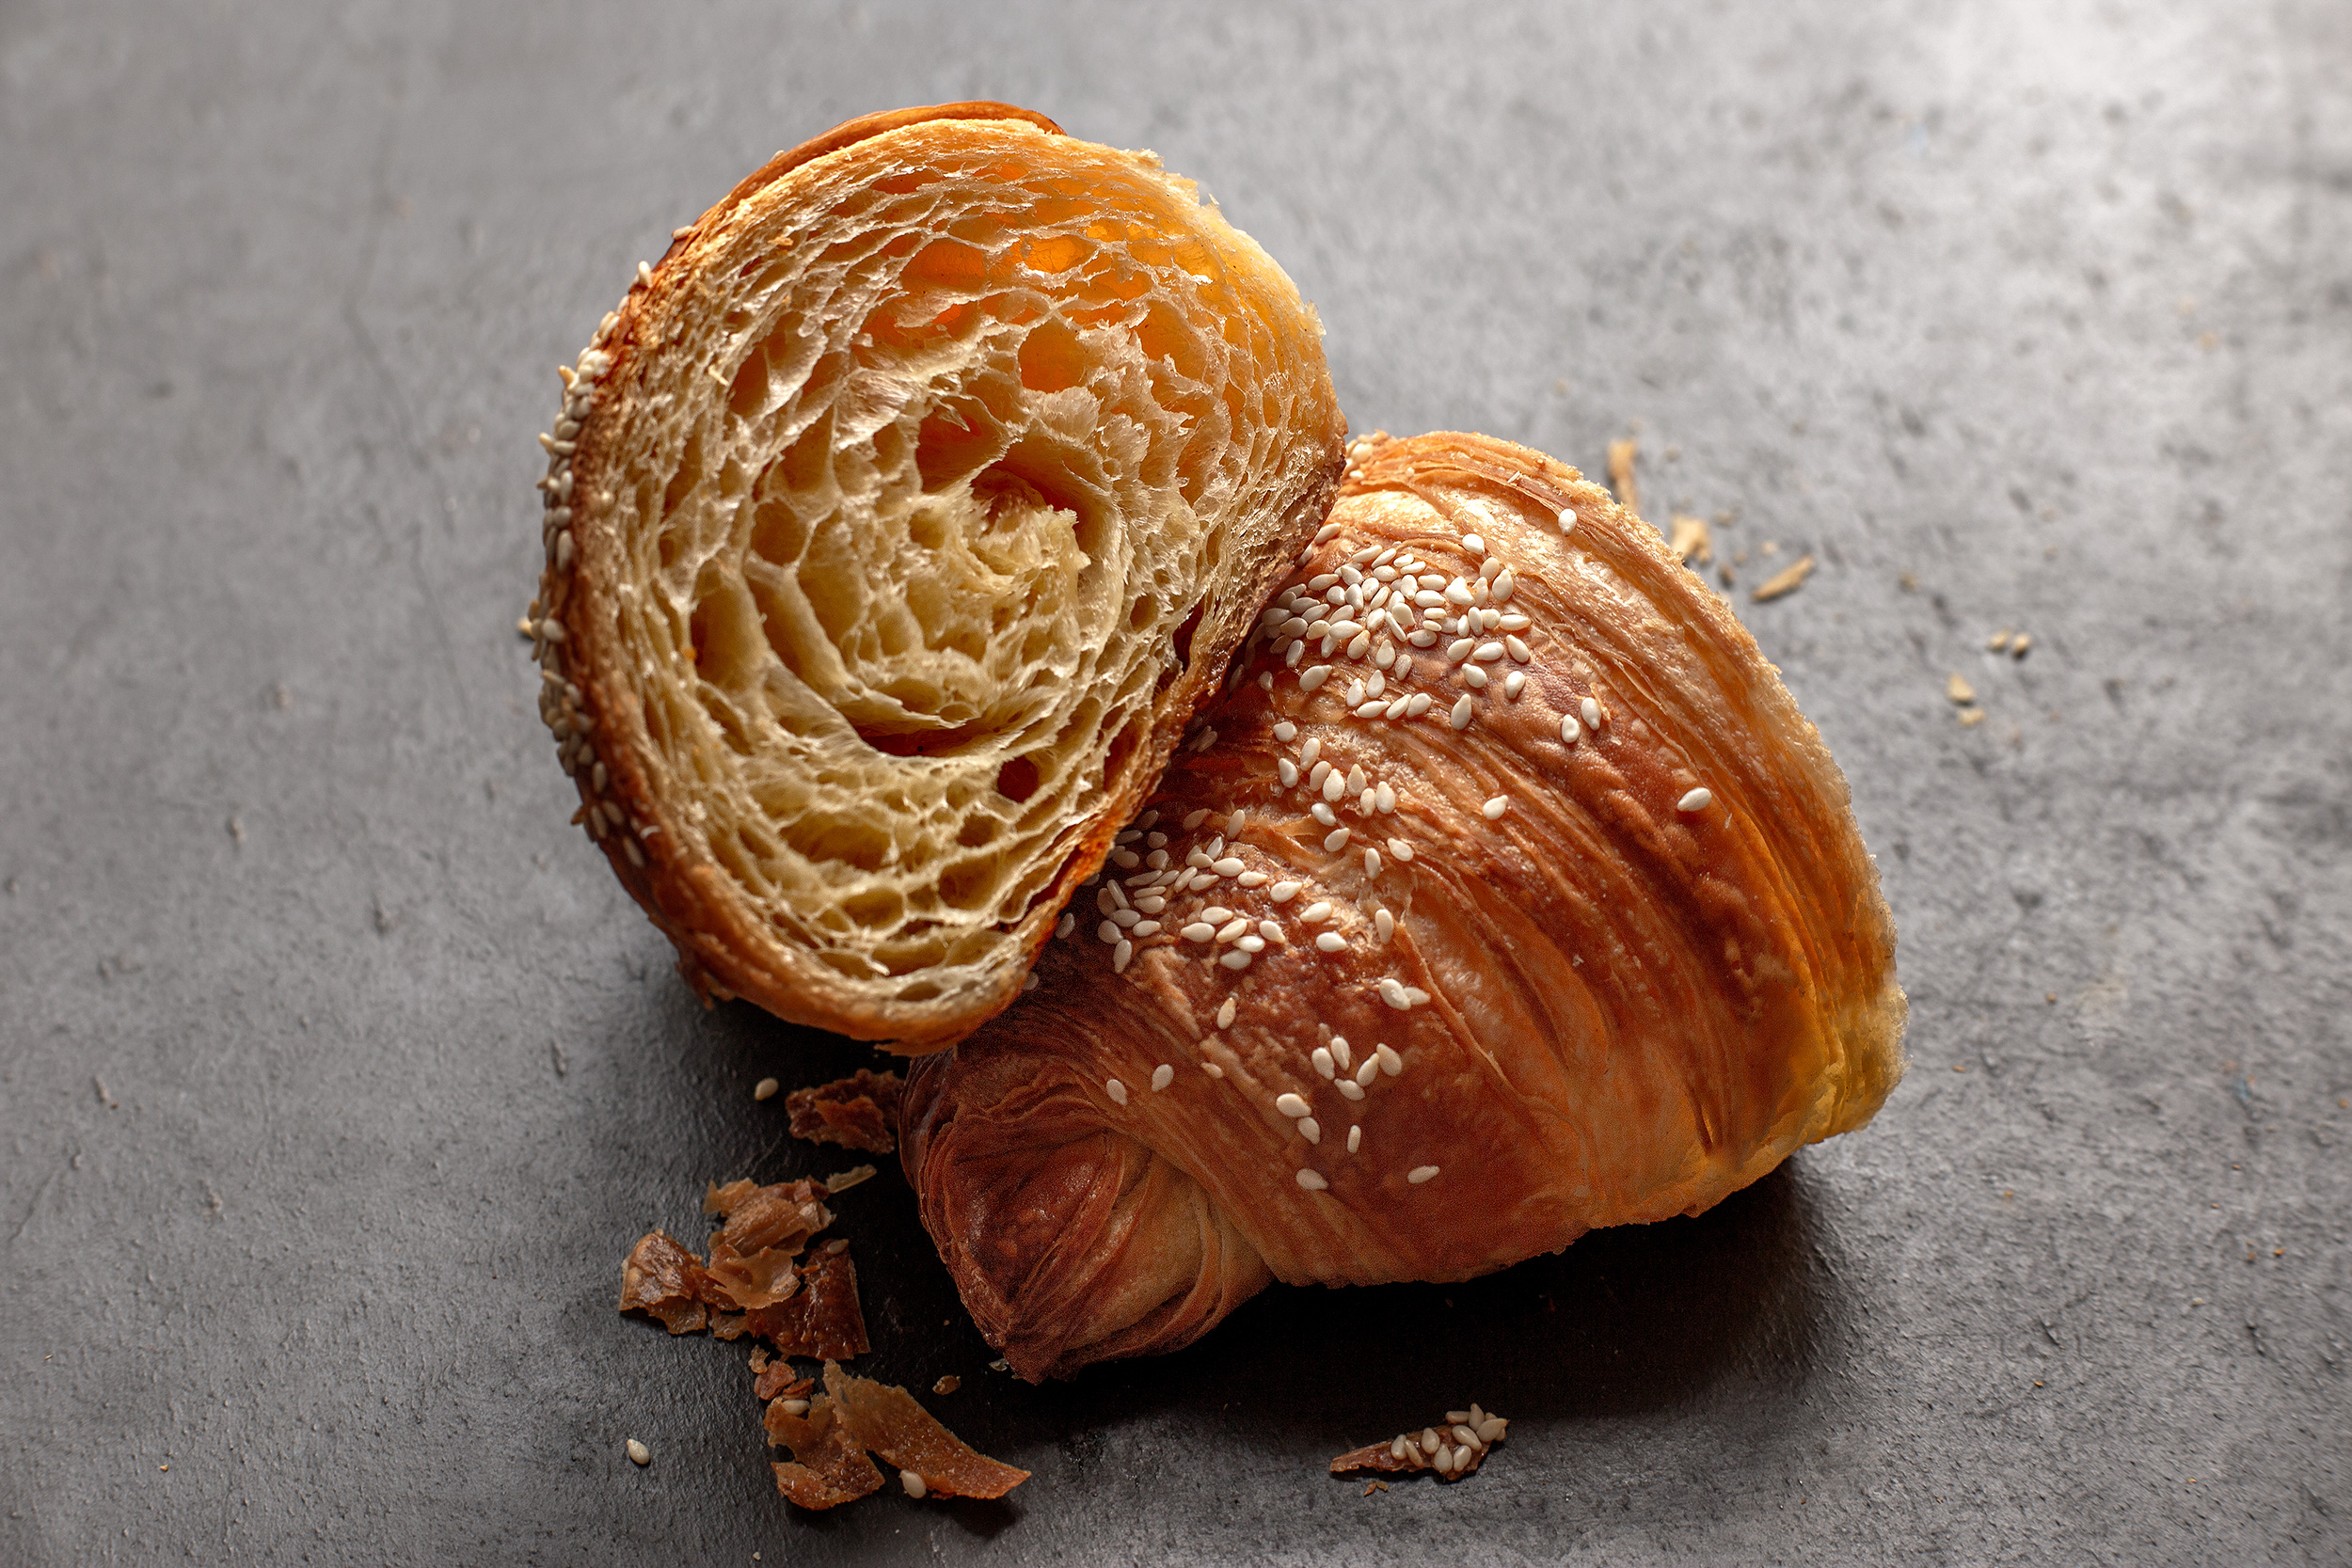 Recipe: All-Butter Croissants